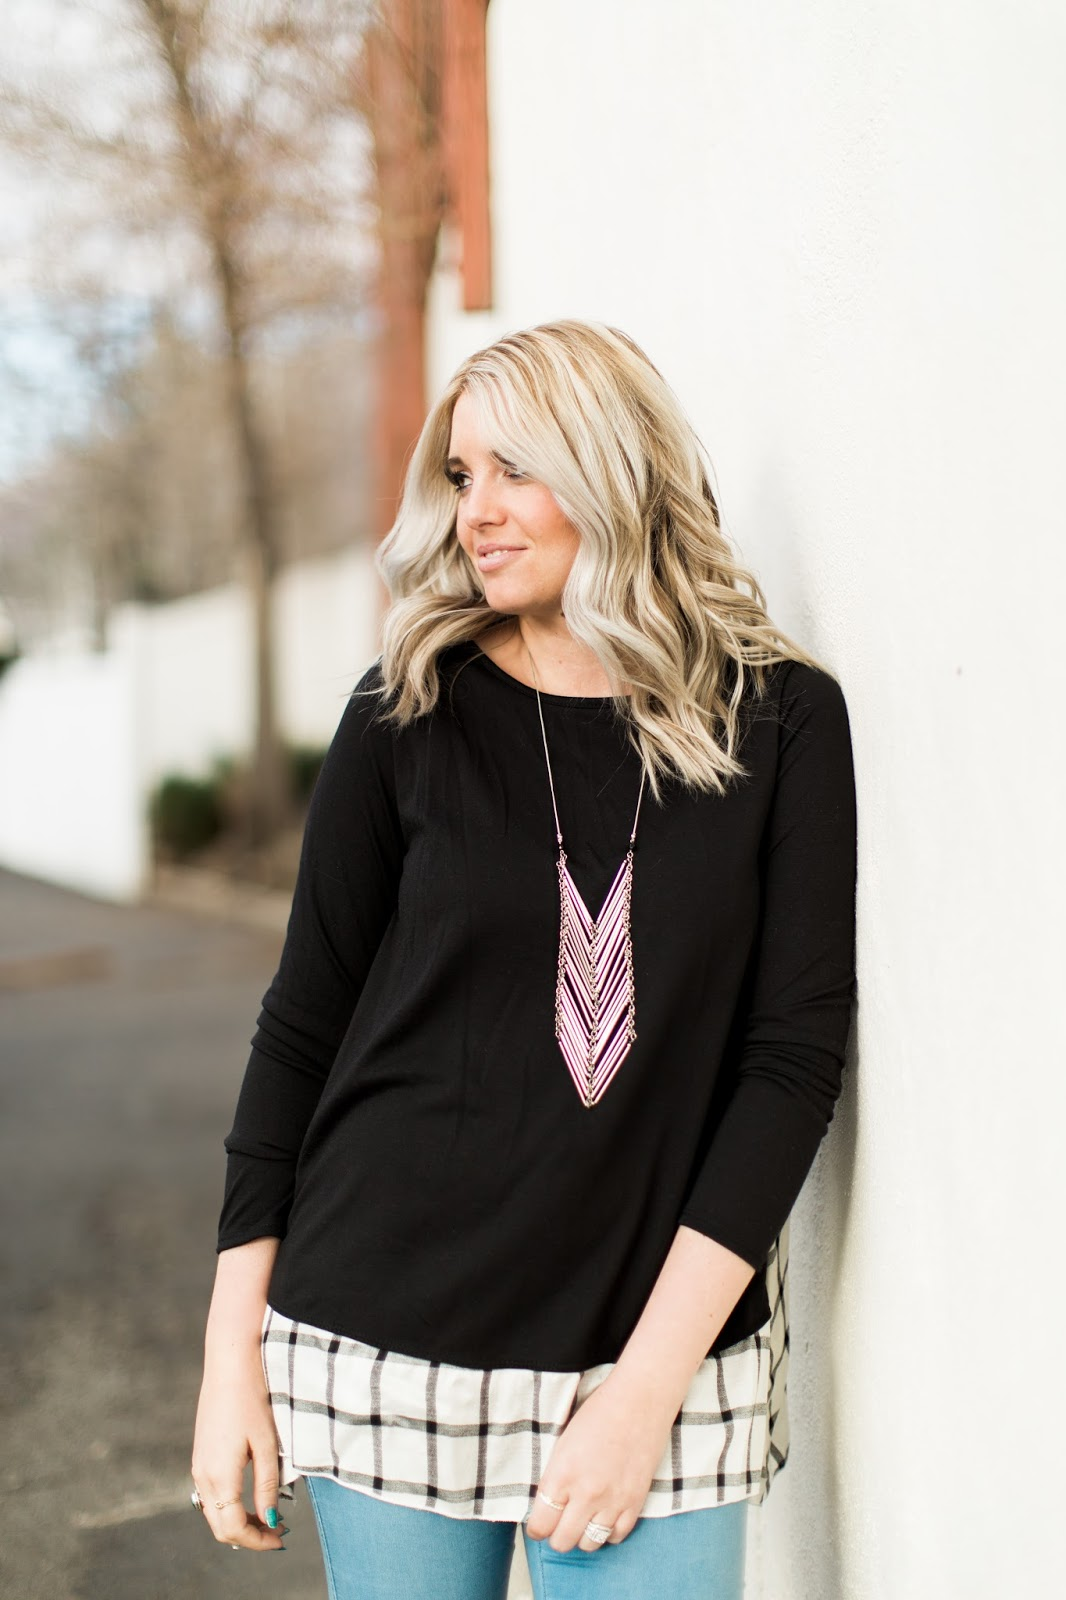 Jane.com, Lightweight Top, Fun Necklace